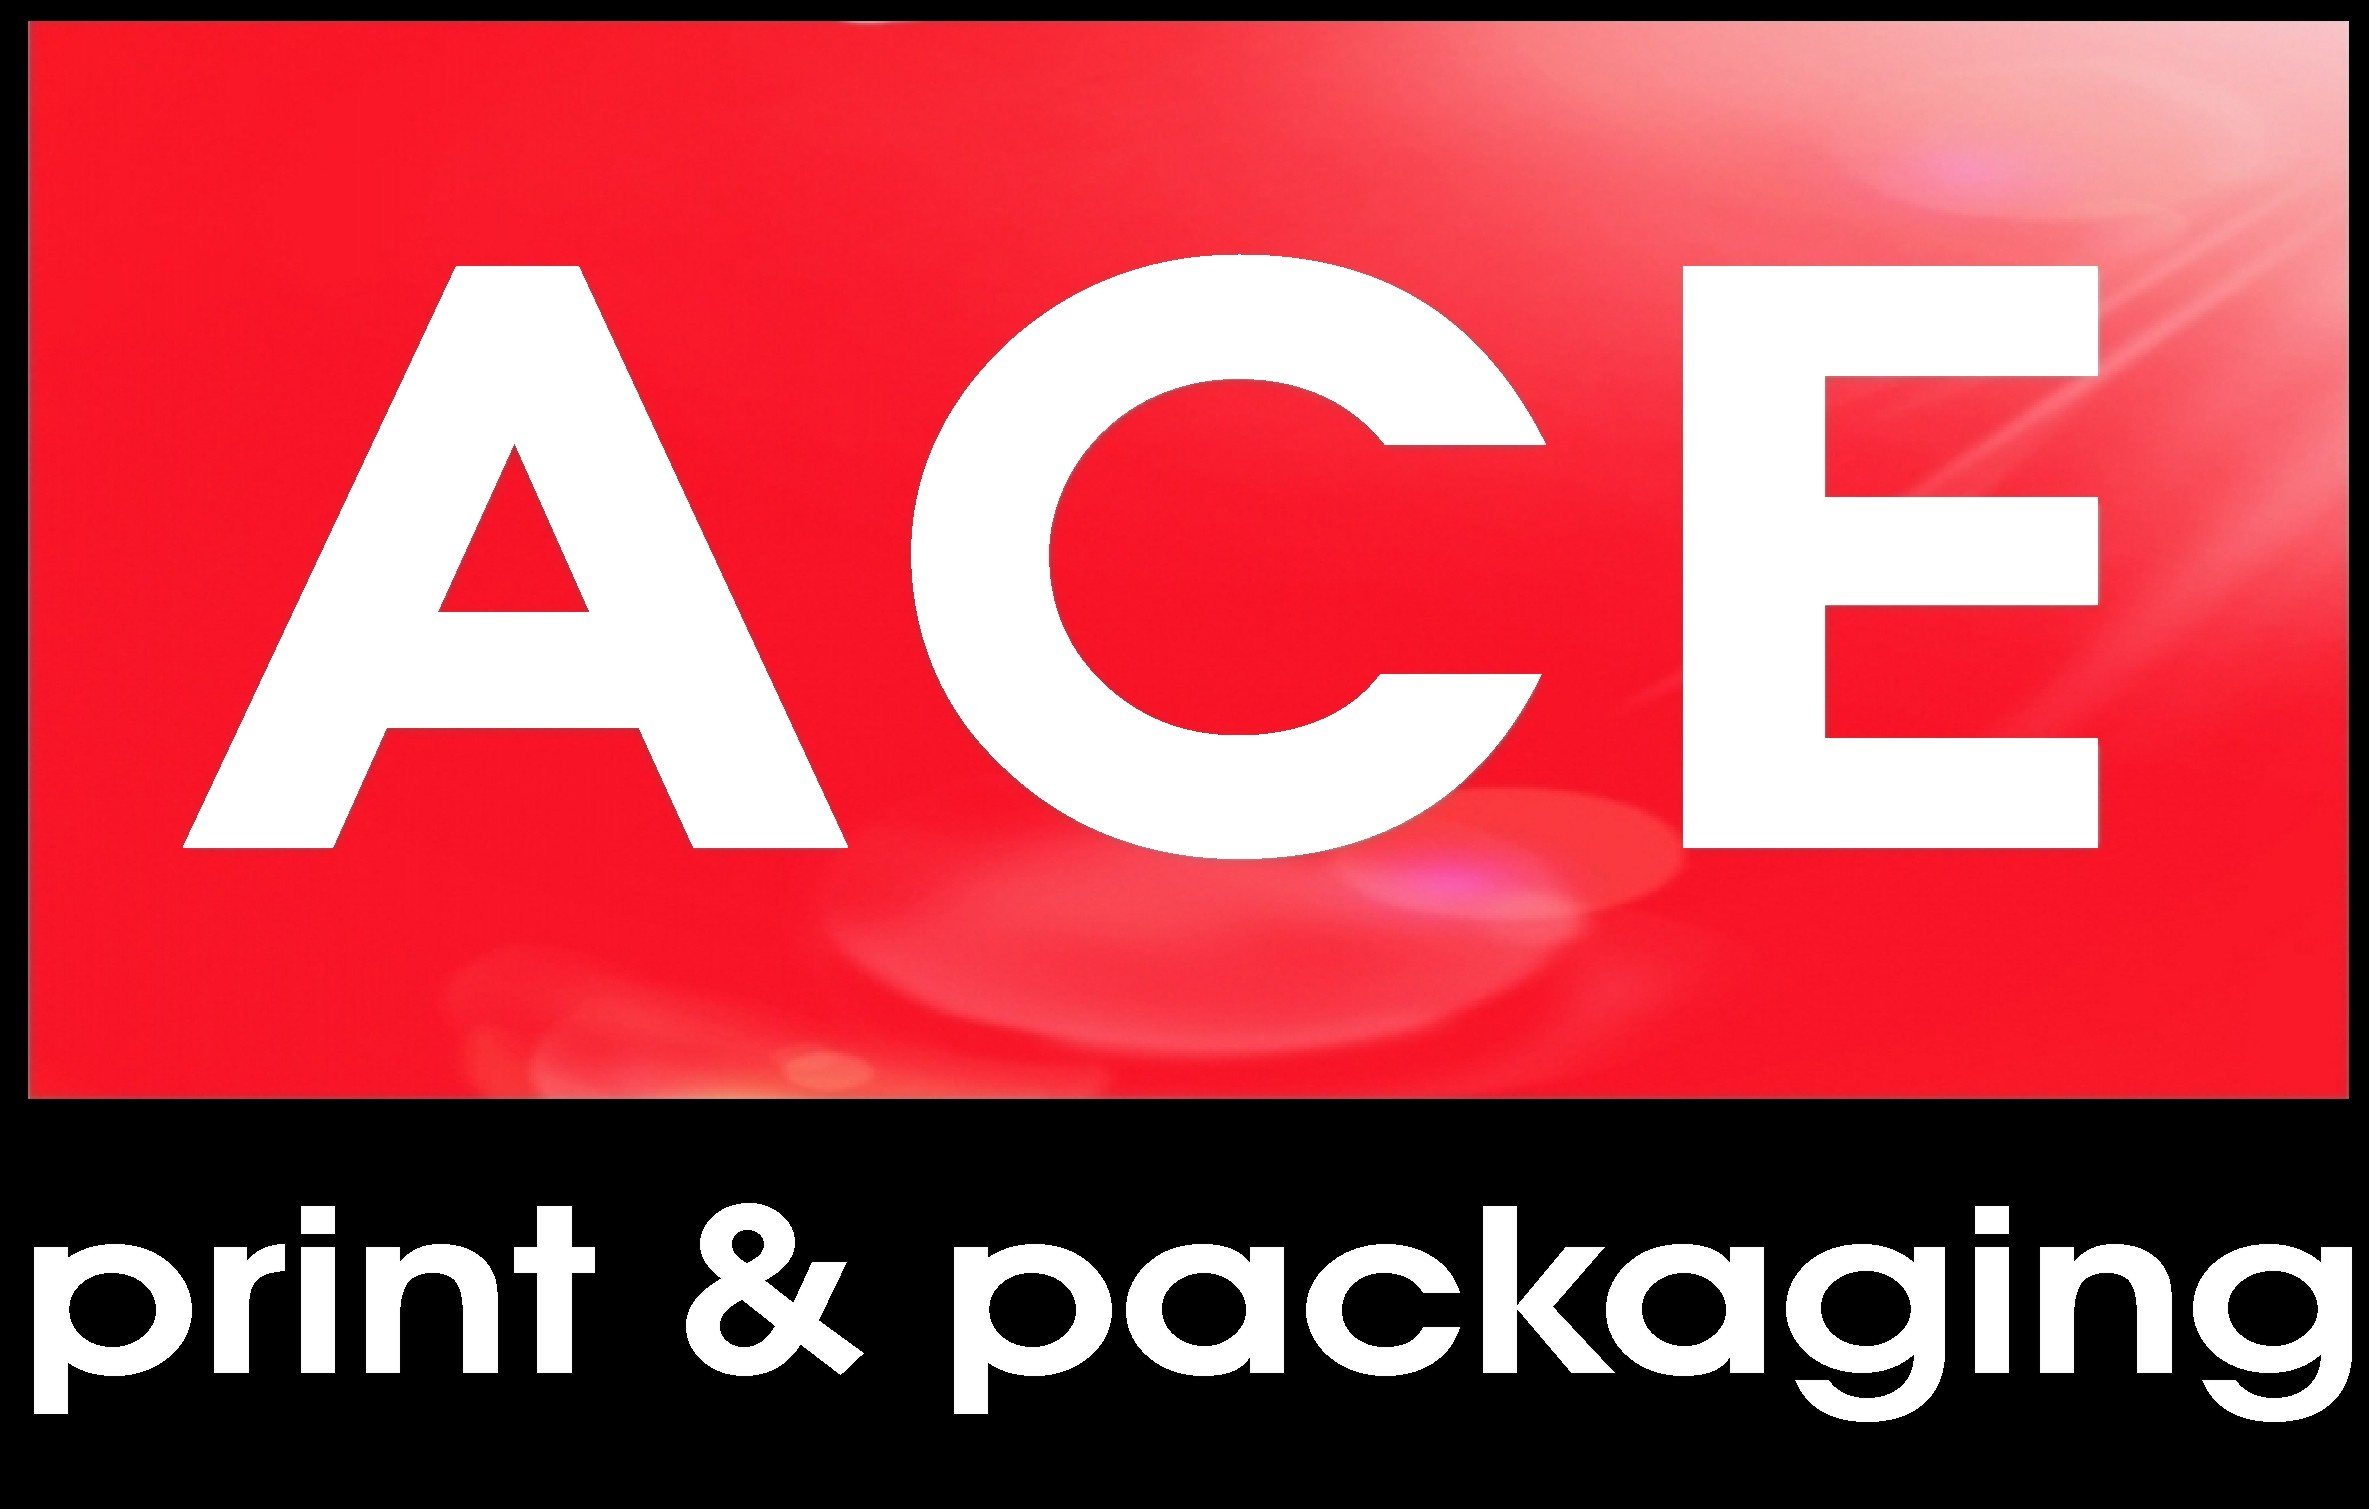 Logon ACE print & packaging